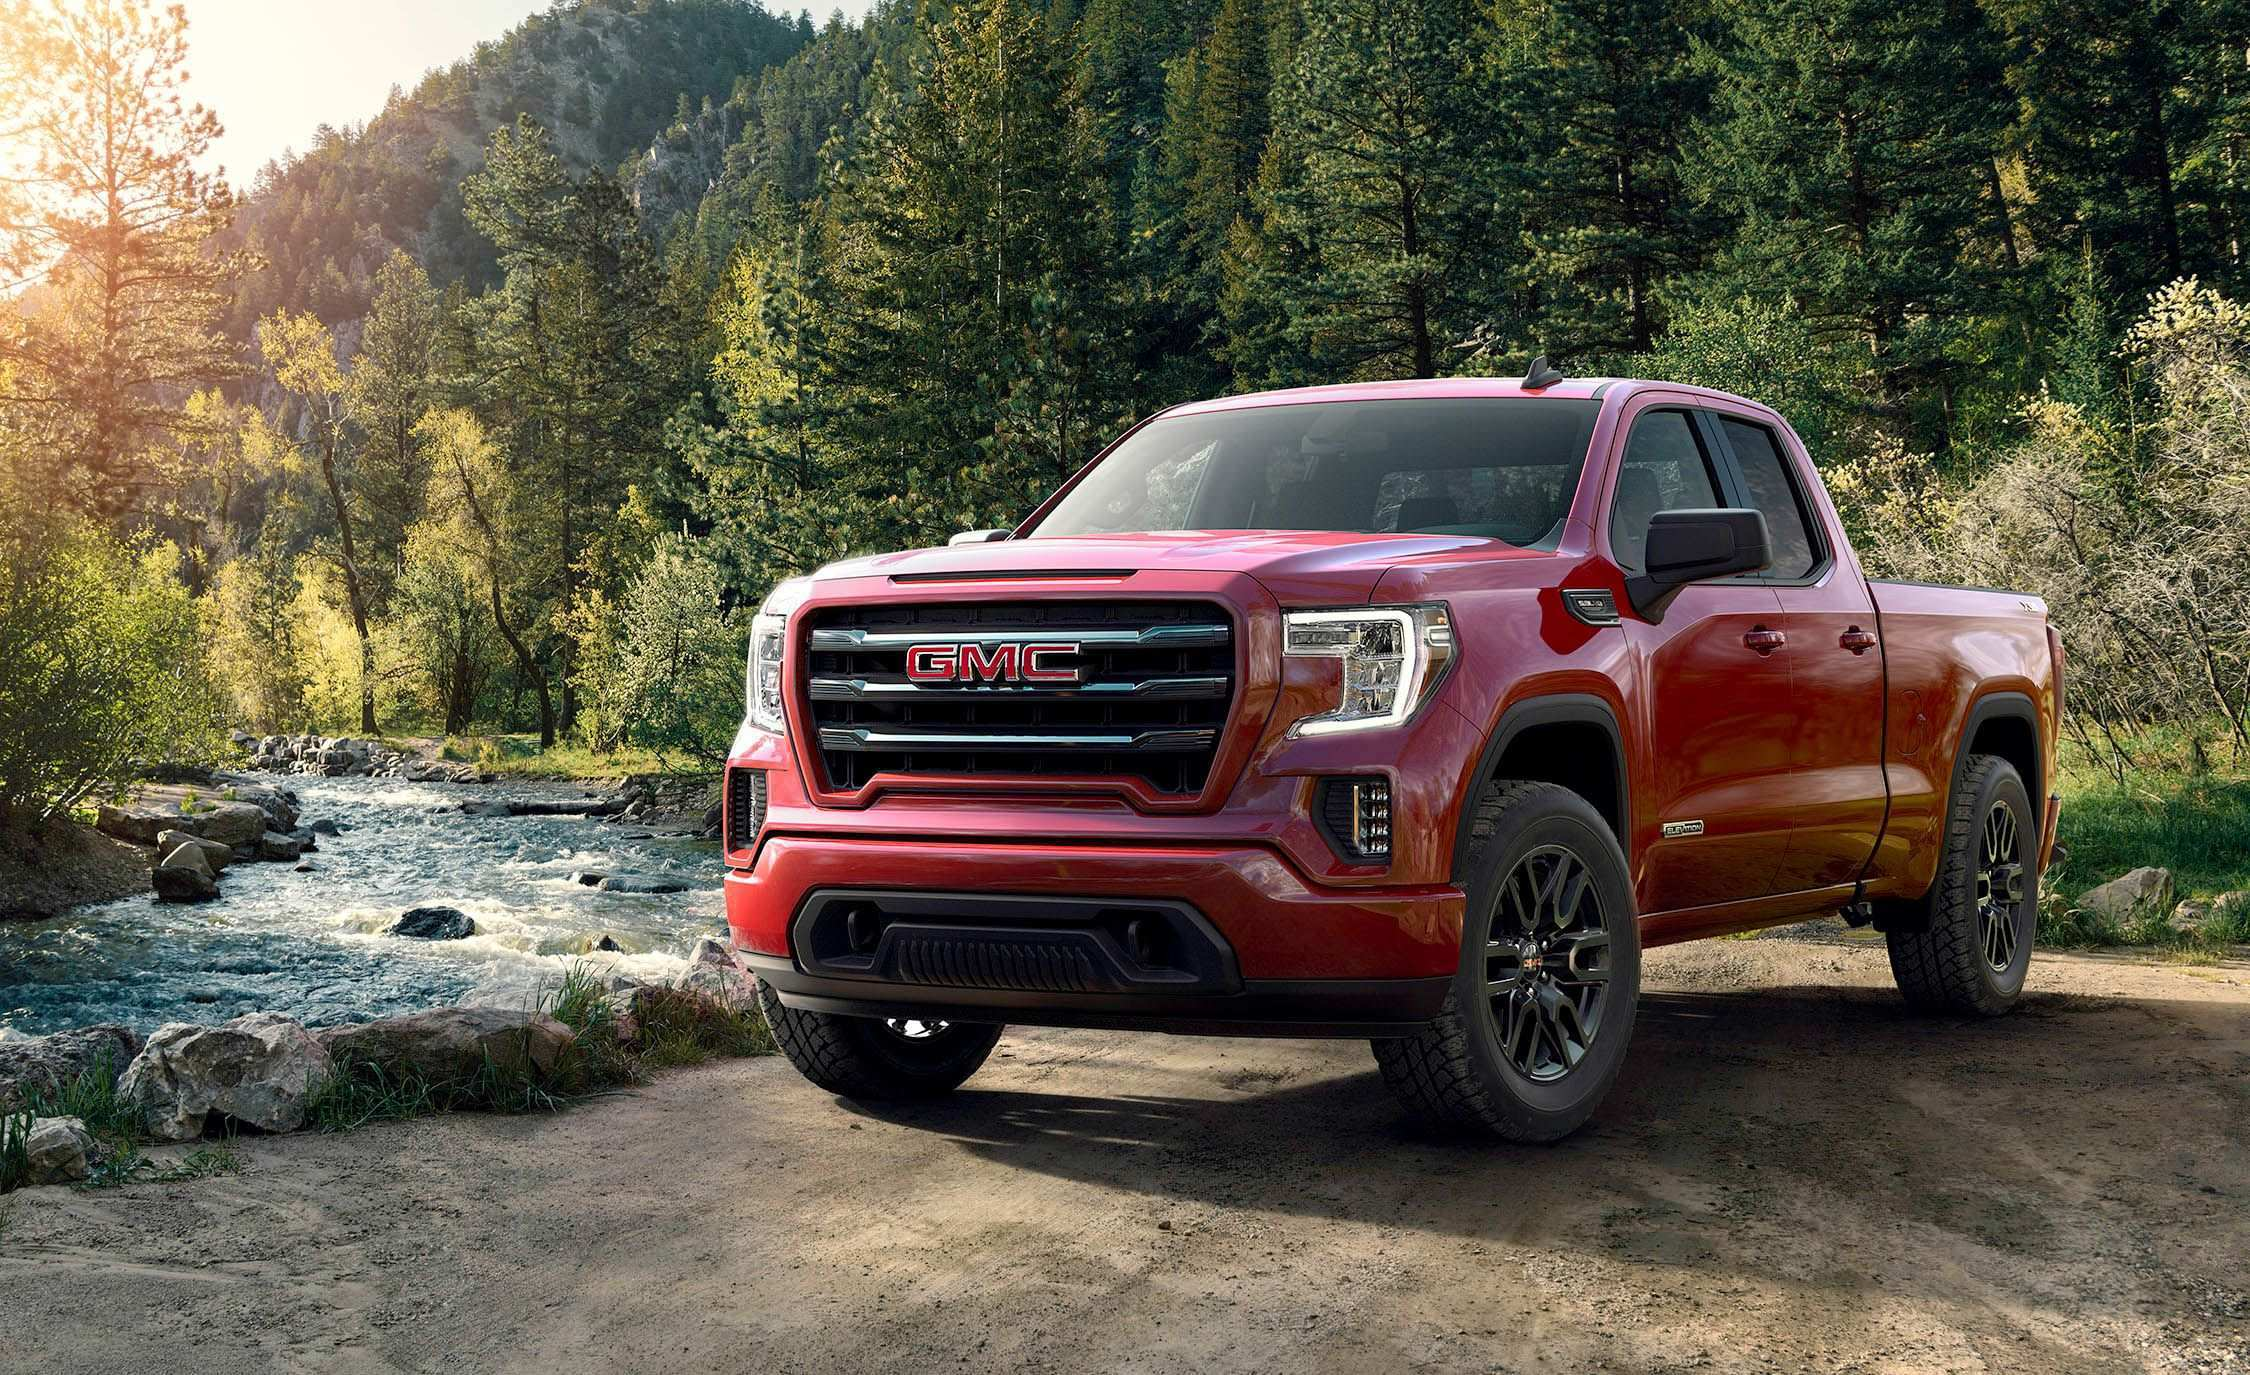 95 The 2019 Gmc Sierra Mpg Specs Redesign by 2019 Gmc Sierra Mpg Specs